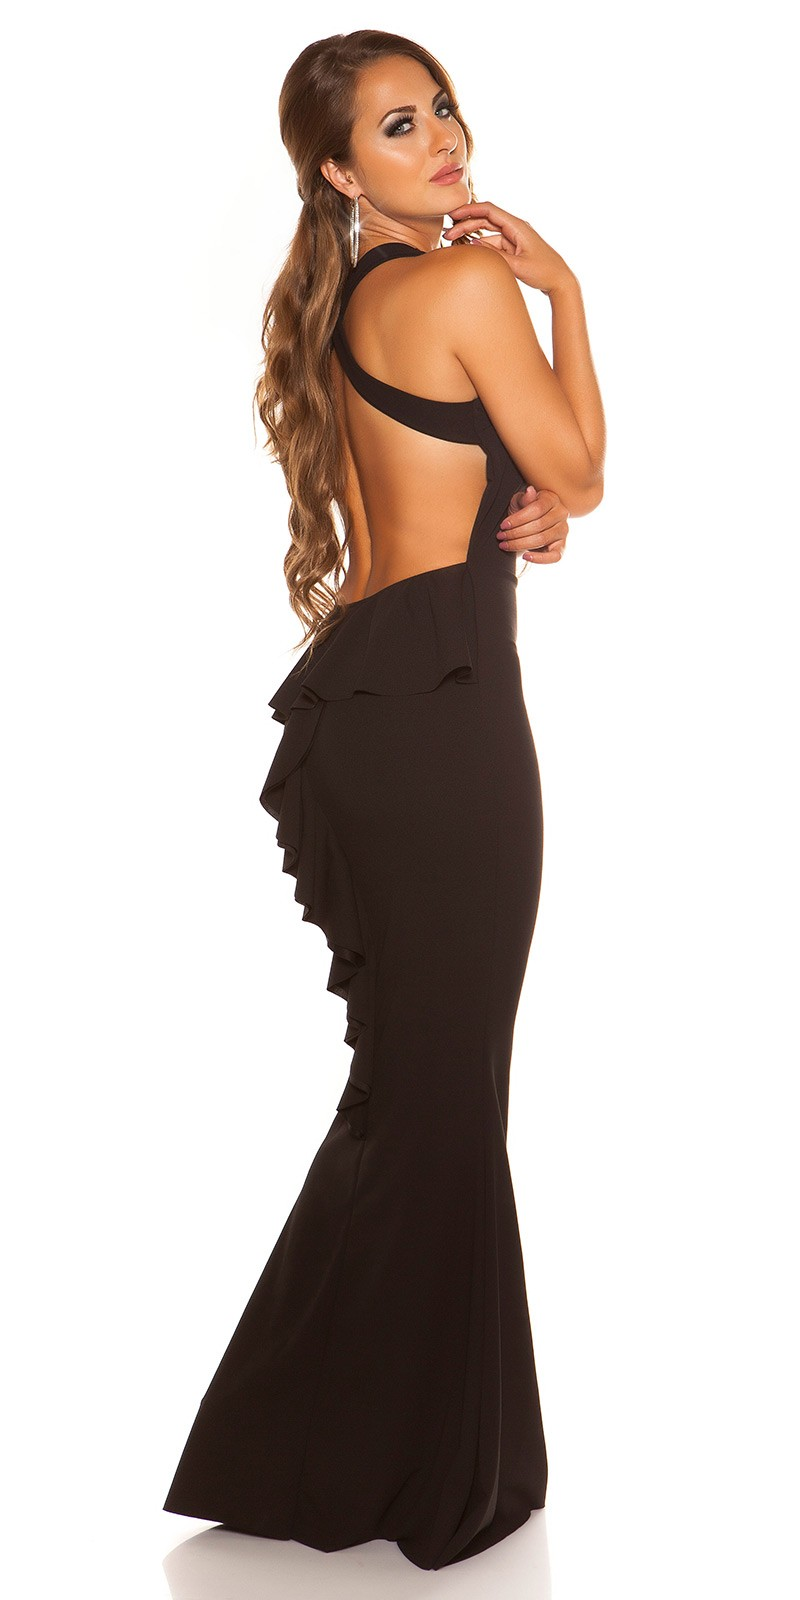 eeSexy evening gown backless  Color BLACK Size Einheitsgroesse 0000V2830 SCHWARZ 35.  Cierne dlhe saty s holym chrbtom 09eee1ece6b